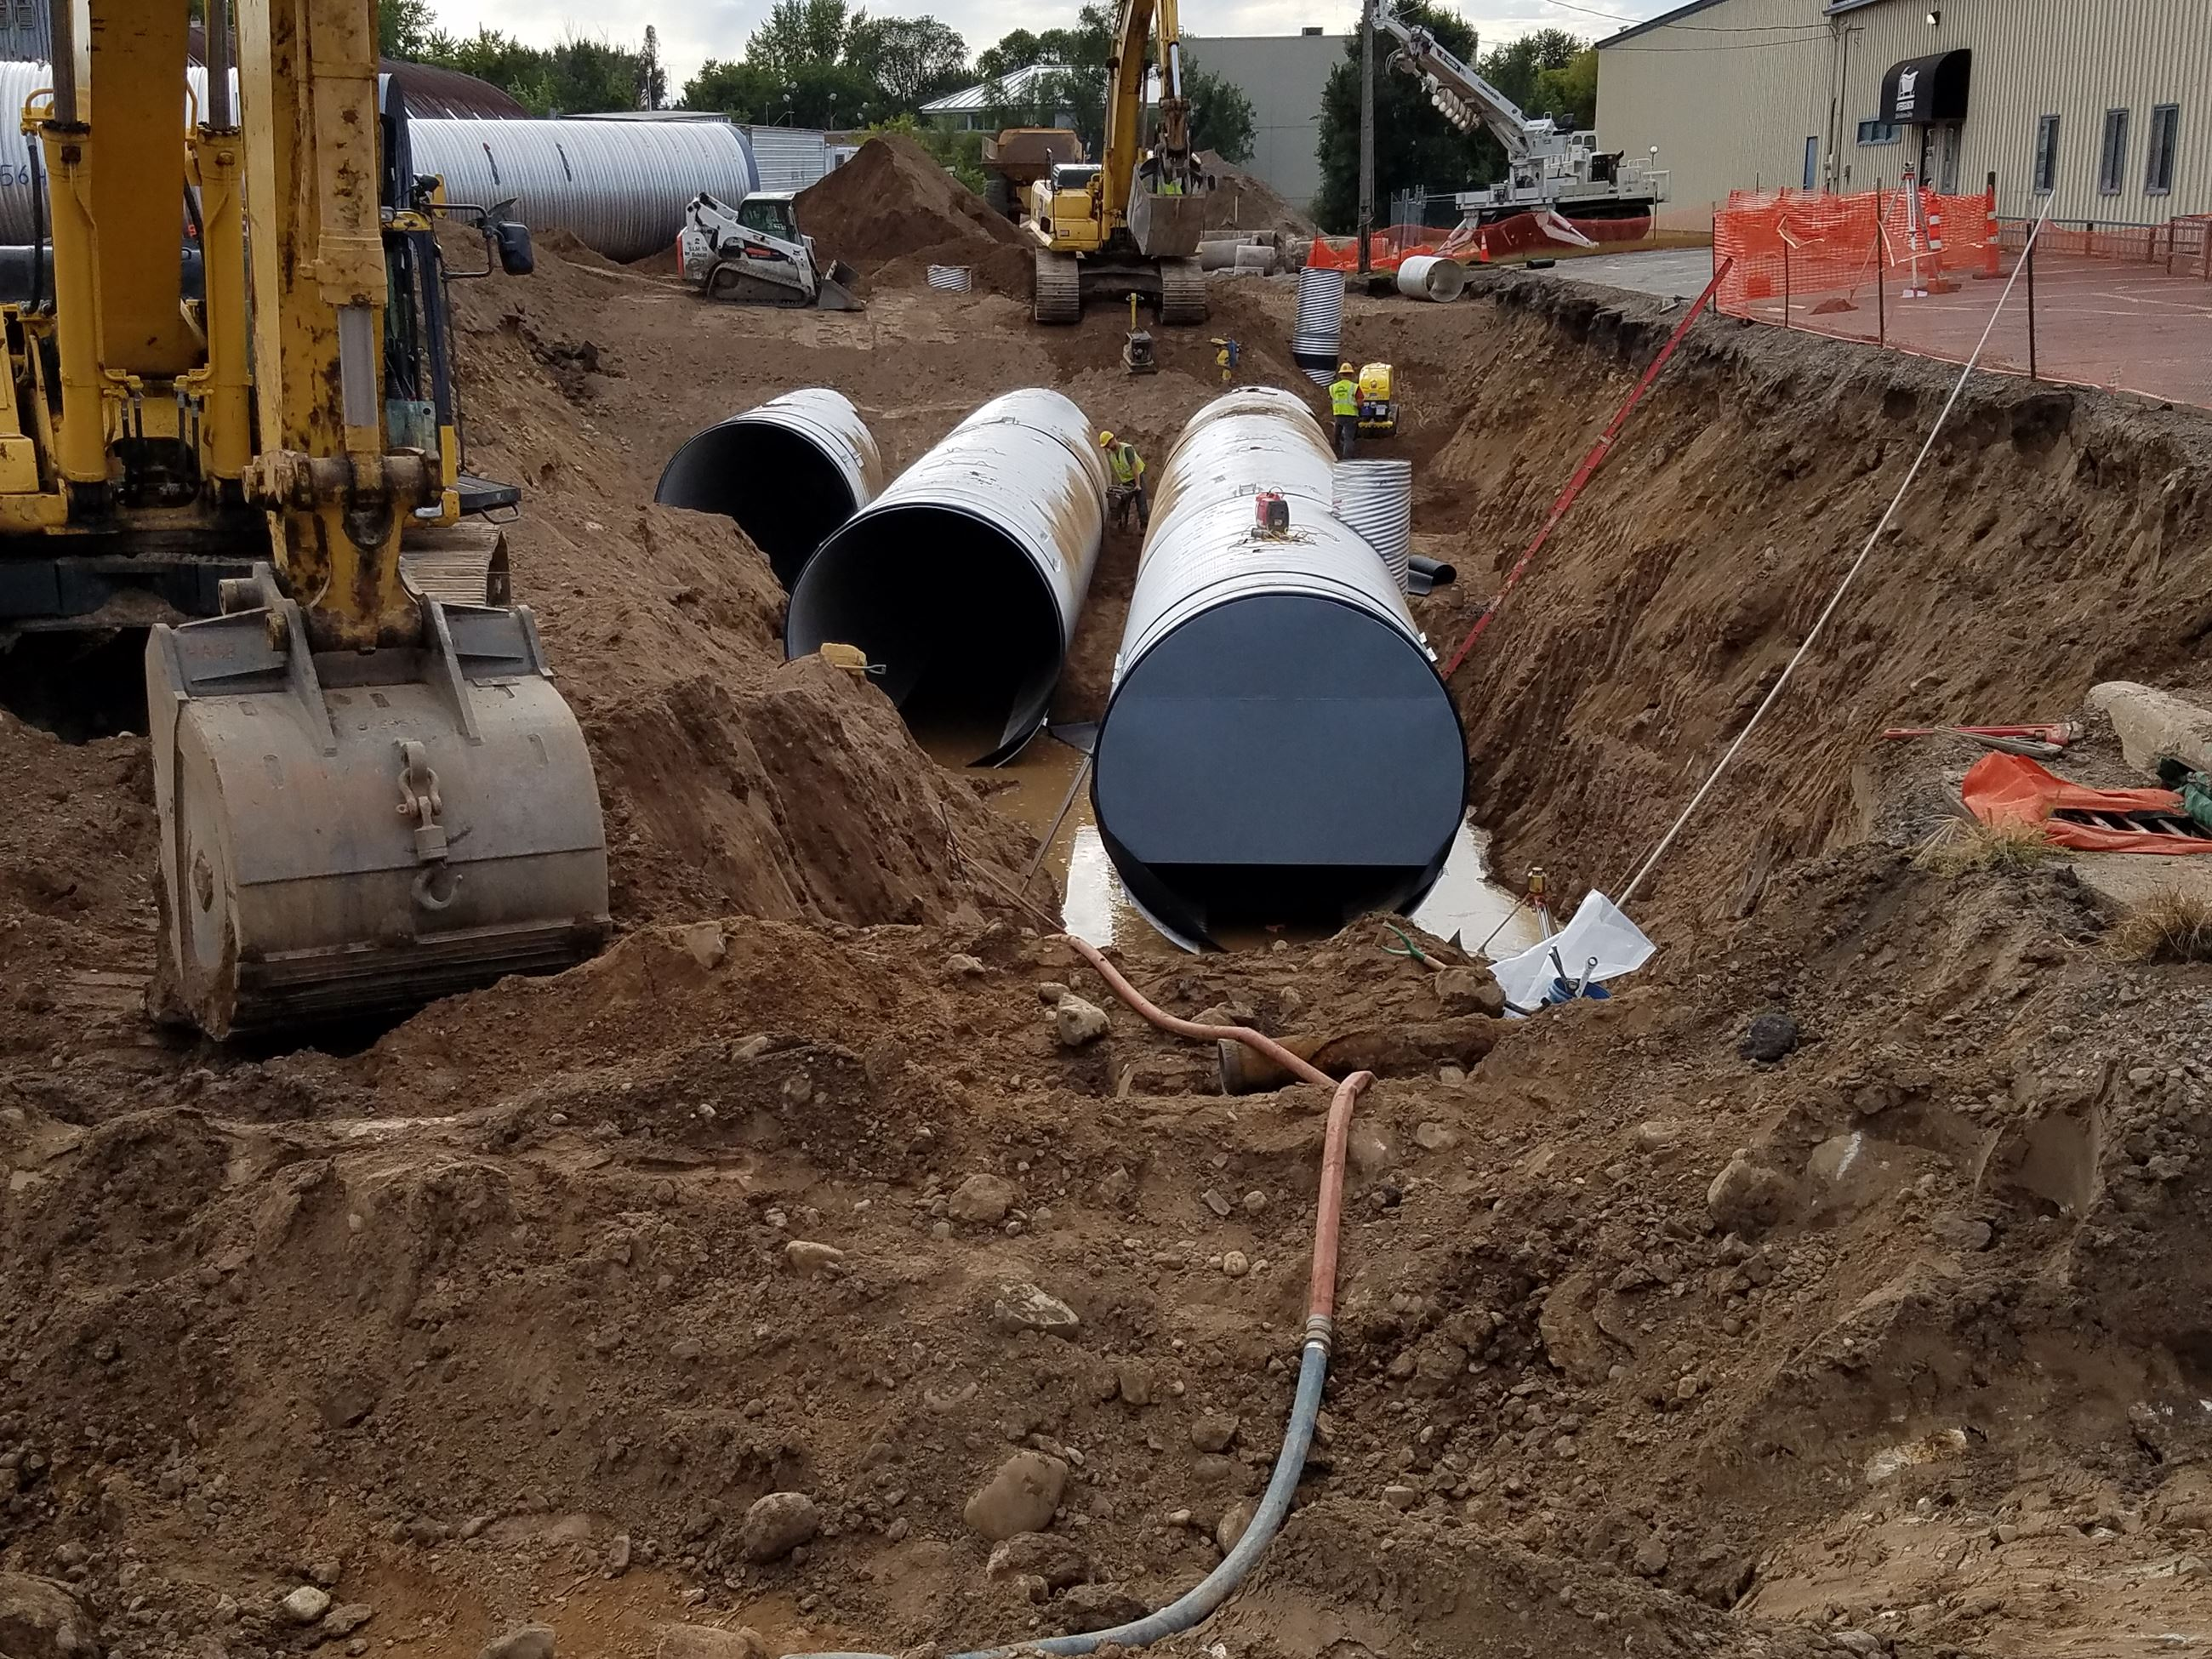 Large metal pipes and construction equipment resting in hole dug into ground